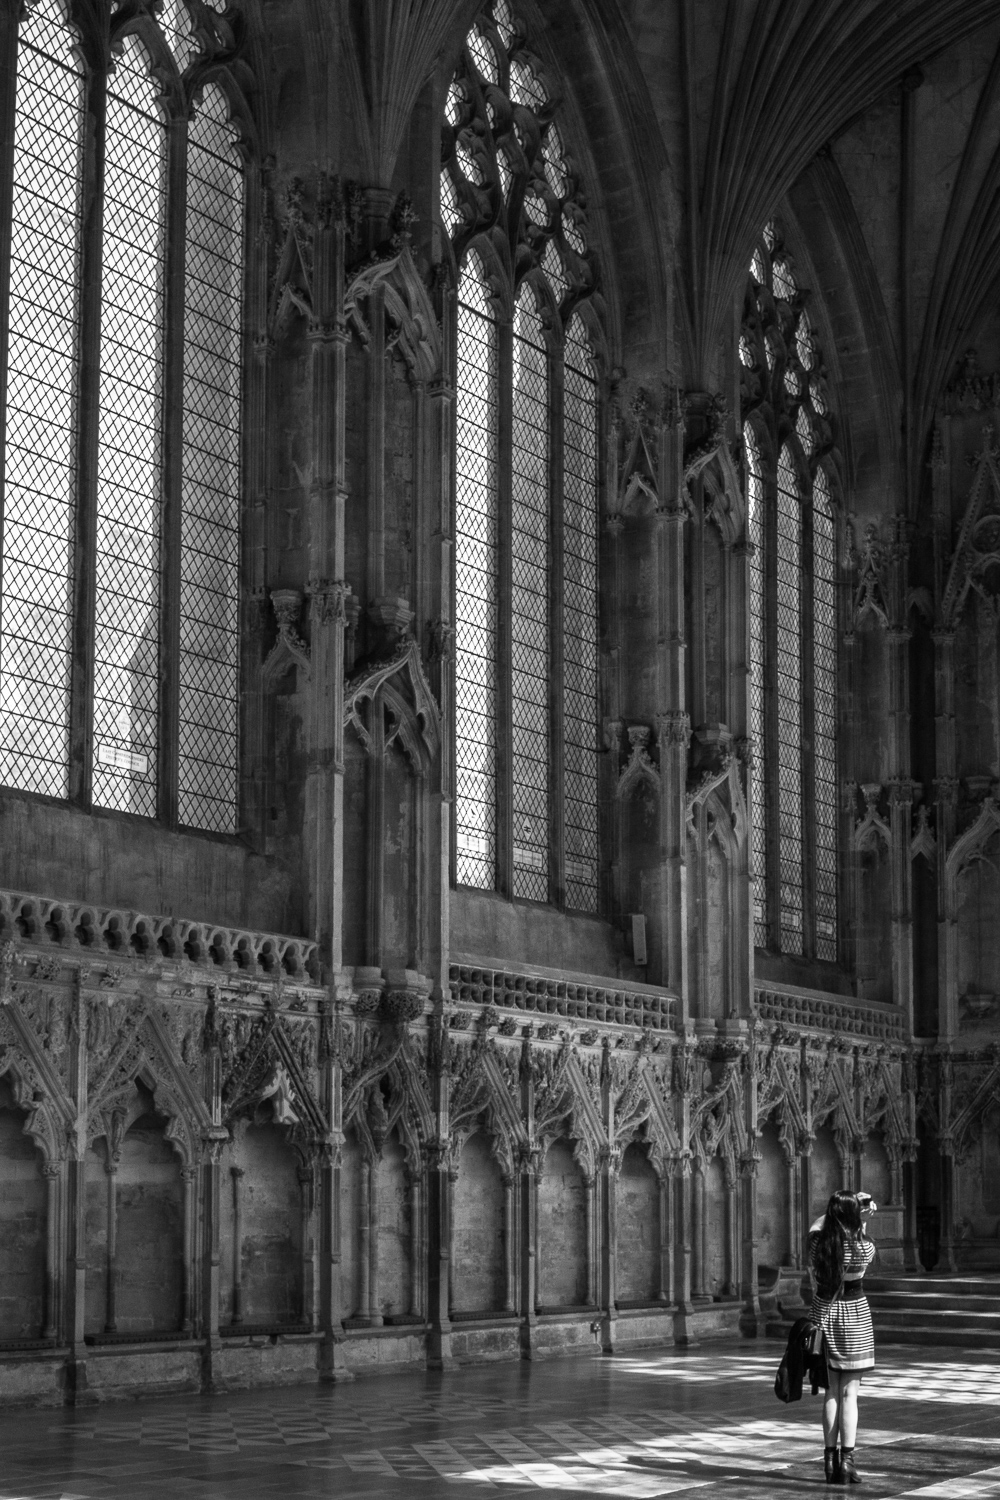 Ely Cathedral, north of Cambridge. Extremely holy. 935 years old. My step brother took me here and it's fantastic. We crawled all the way to the top through Peter Dinklage doors and spiral staircases that would make Morgan and Morgan salivate. It was defaced pretty extensively during the Reformation, but they left this chapel on the side and I had about .003 seconds to snap this photo of a total stranger.